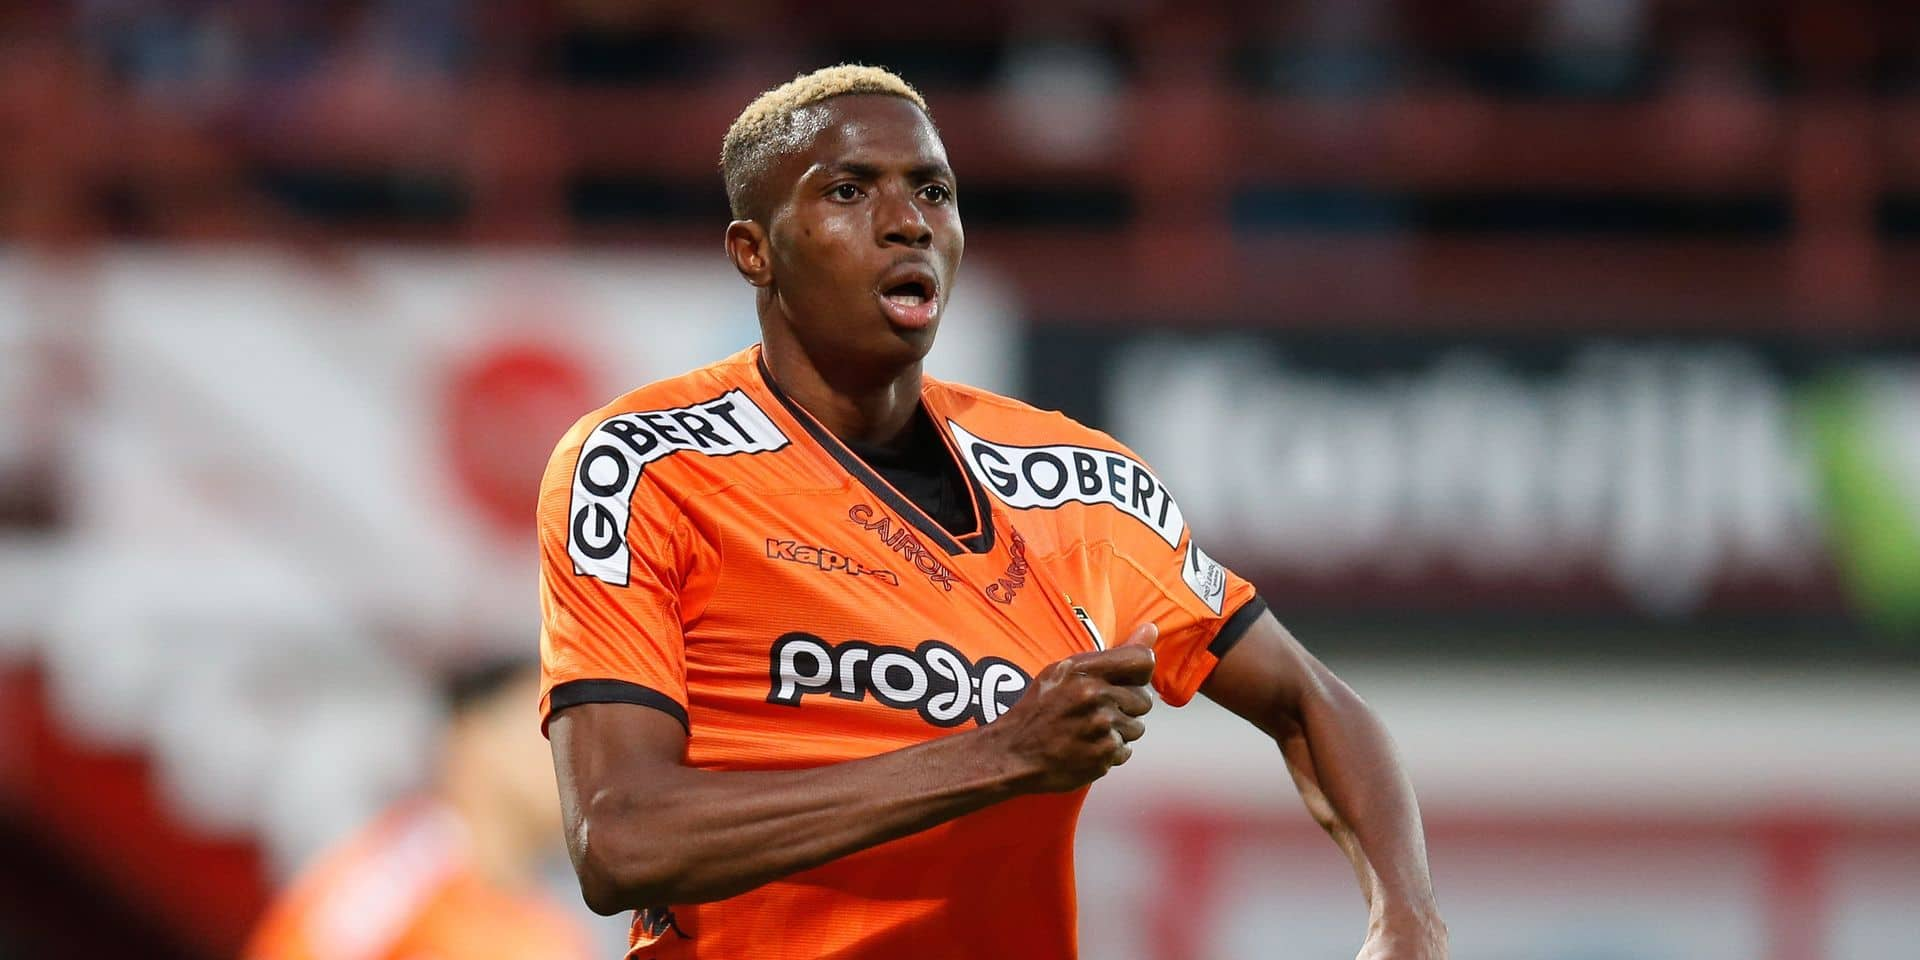 Charleroi's Victor Osimhen celebrates after scoring during a soccer game between KV Kortrijk and Sporting Charleroi, Wednesday 22 May 2019 in Kortrijk, the finals of the Play-off 2 of the 'Jupiler Pro League' Belgian soccer championship. BELGA PHOTO BRUNO FAHY